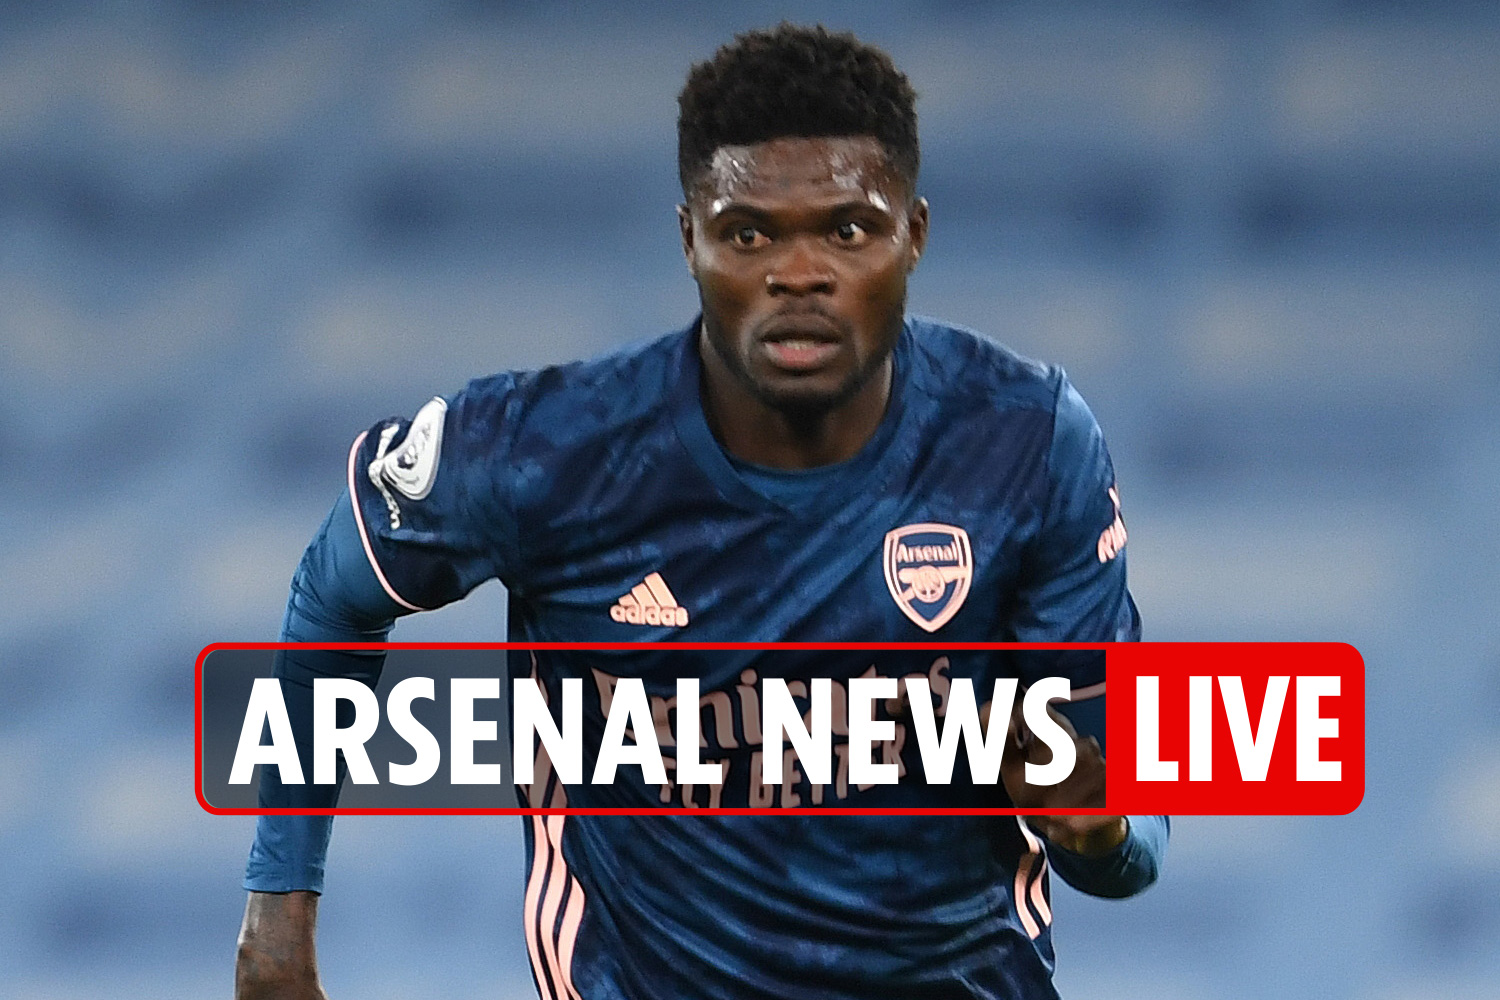 8.45am Arsenal news LIVE: Partey booked on debut, Man City defeat at the Etihad, Saliba transfer, Tierney UPDATE